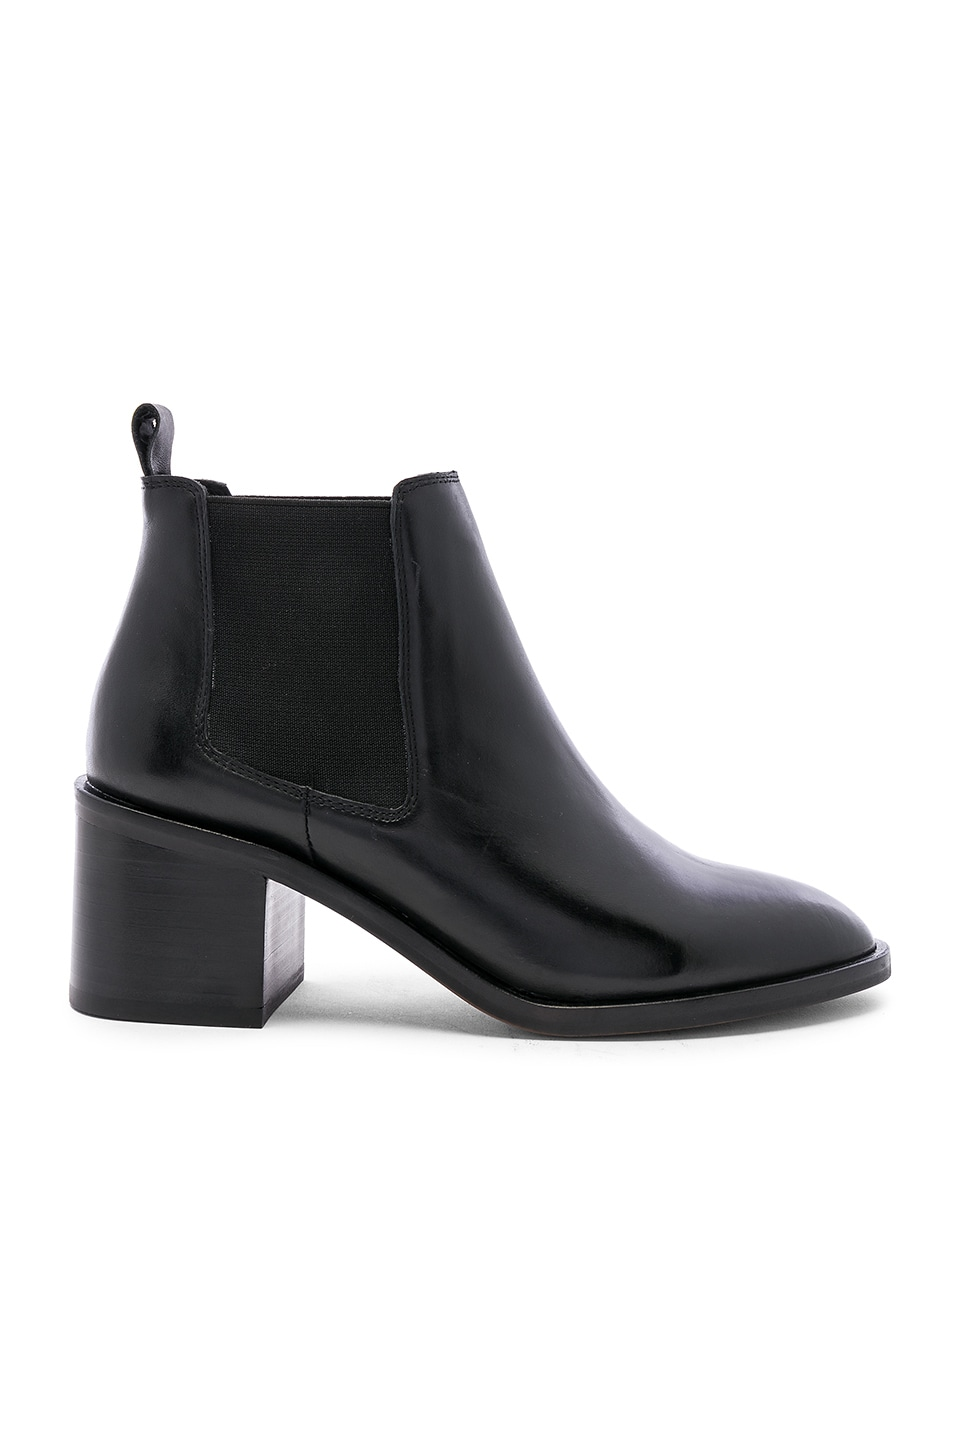 Alias Mae Galis Bootie in Black